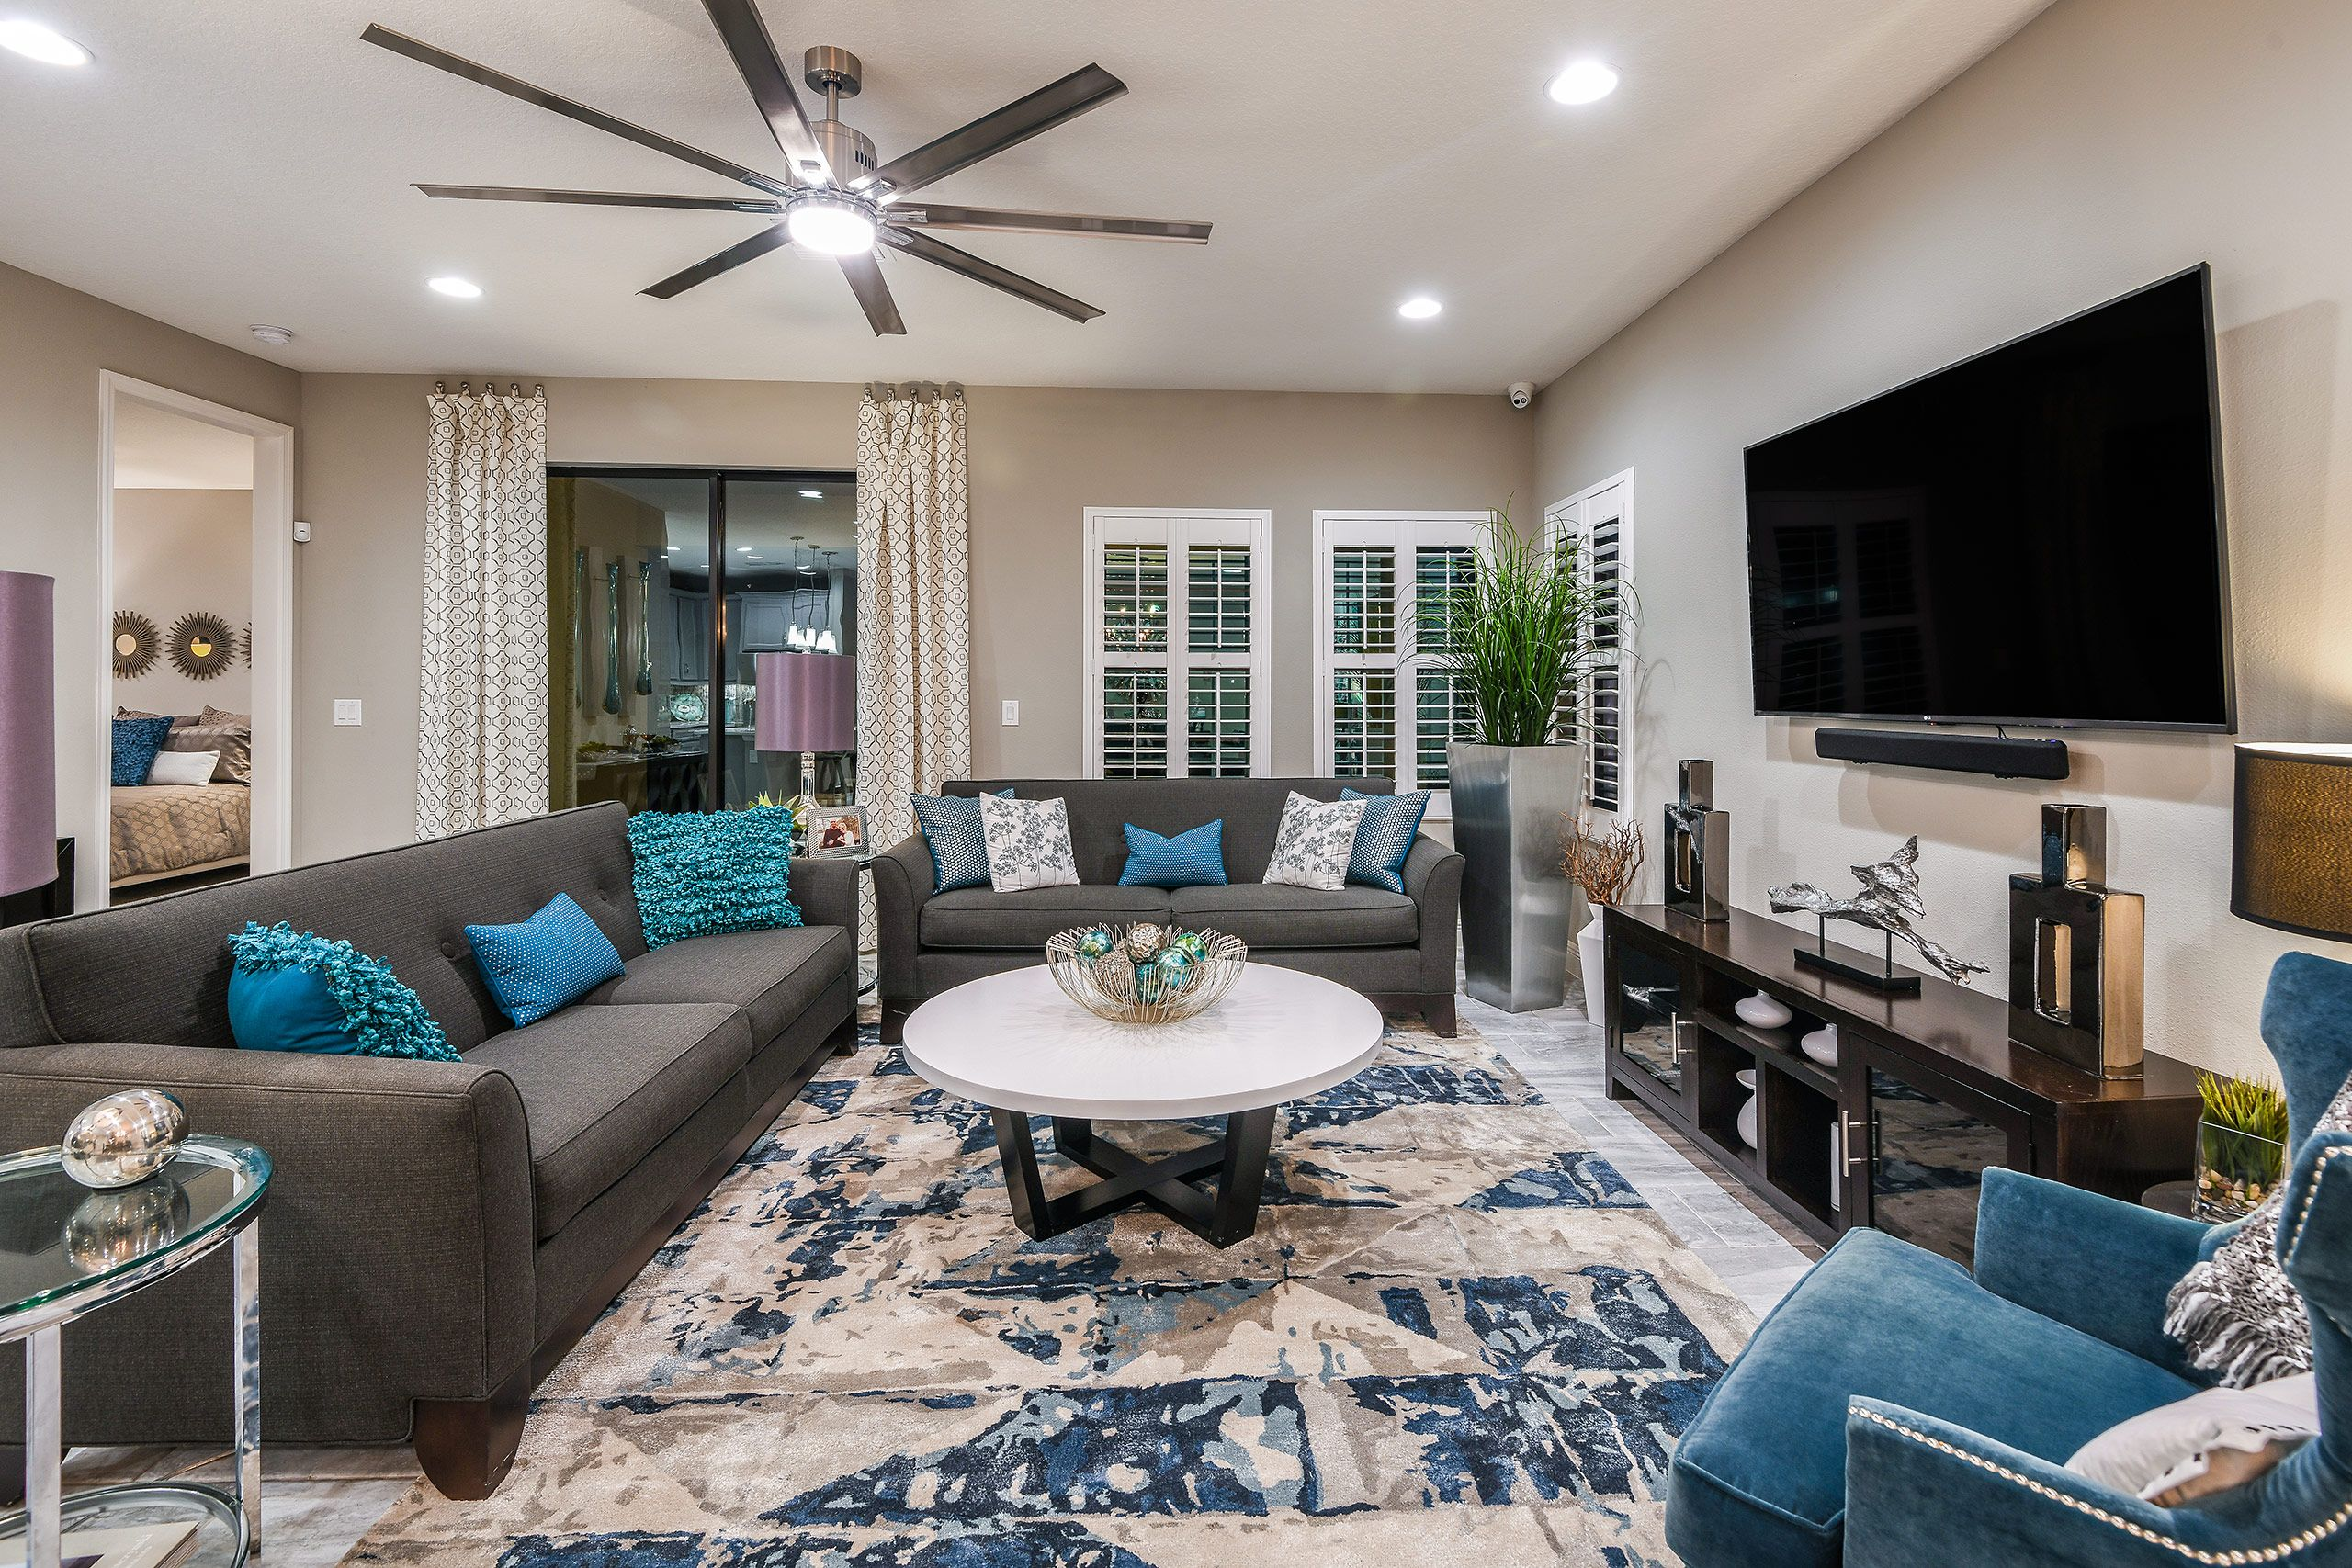 Living Area featured in the Sandpiper By Homes by WestBay in Tampa-St. Petersburg, FL